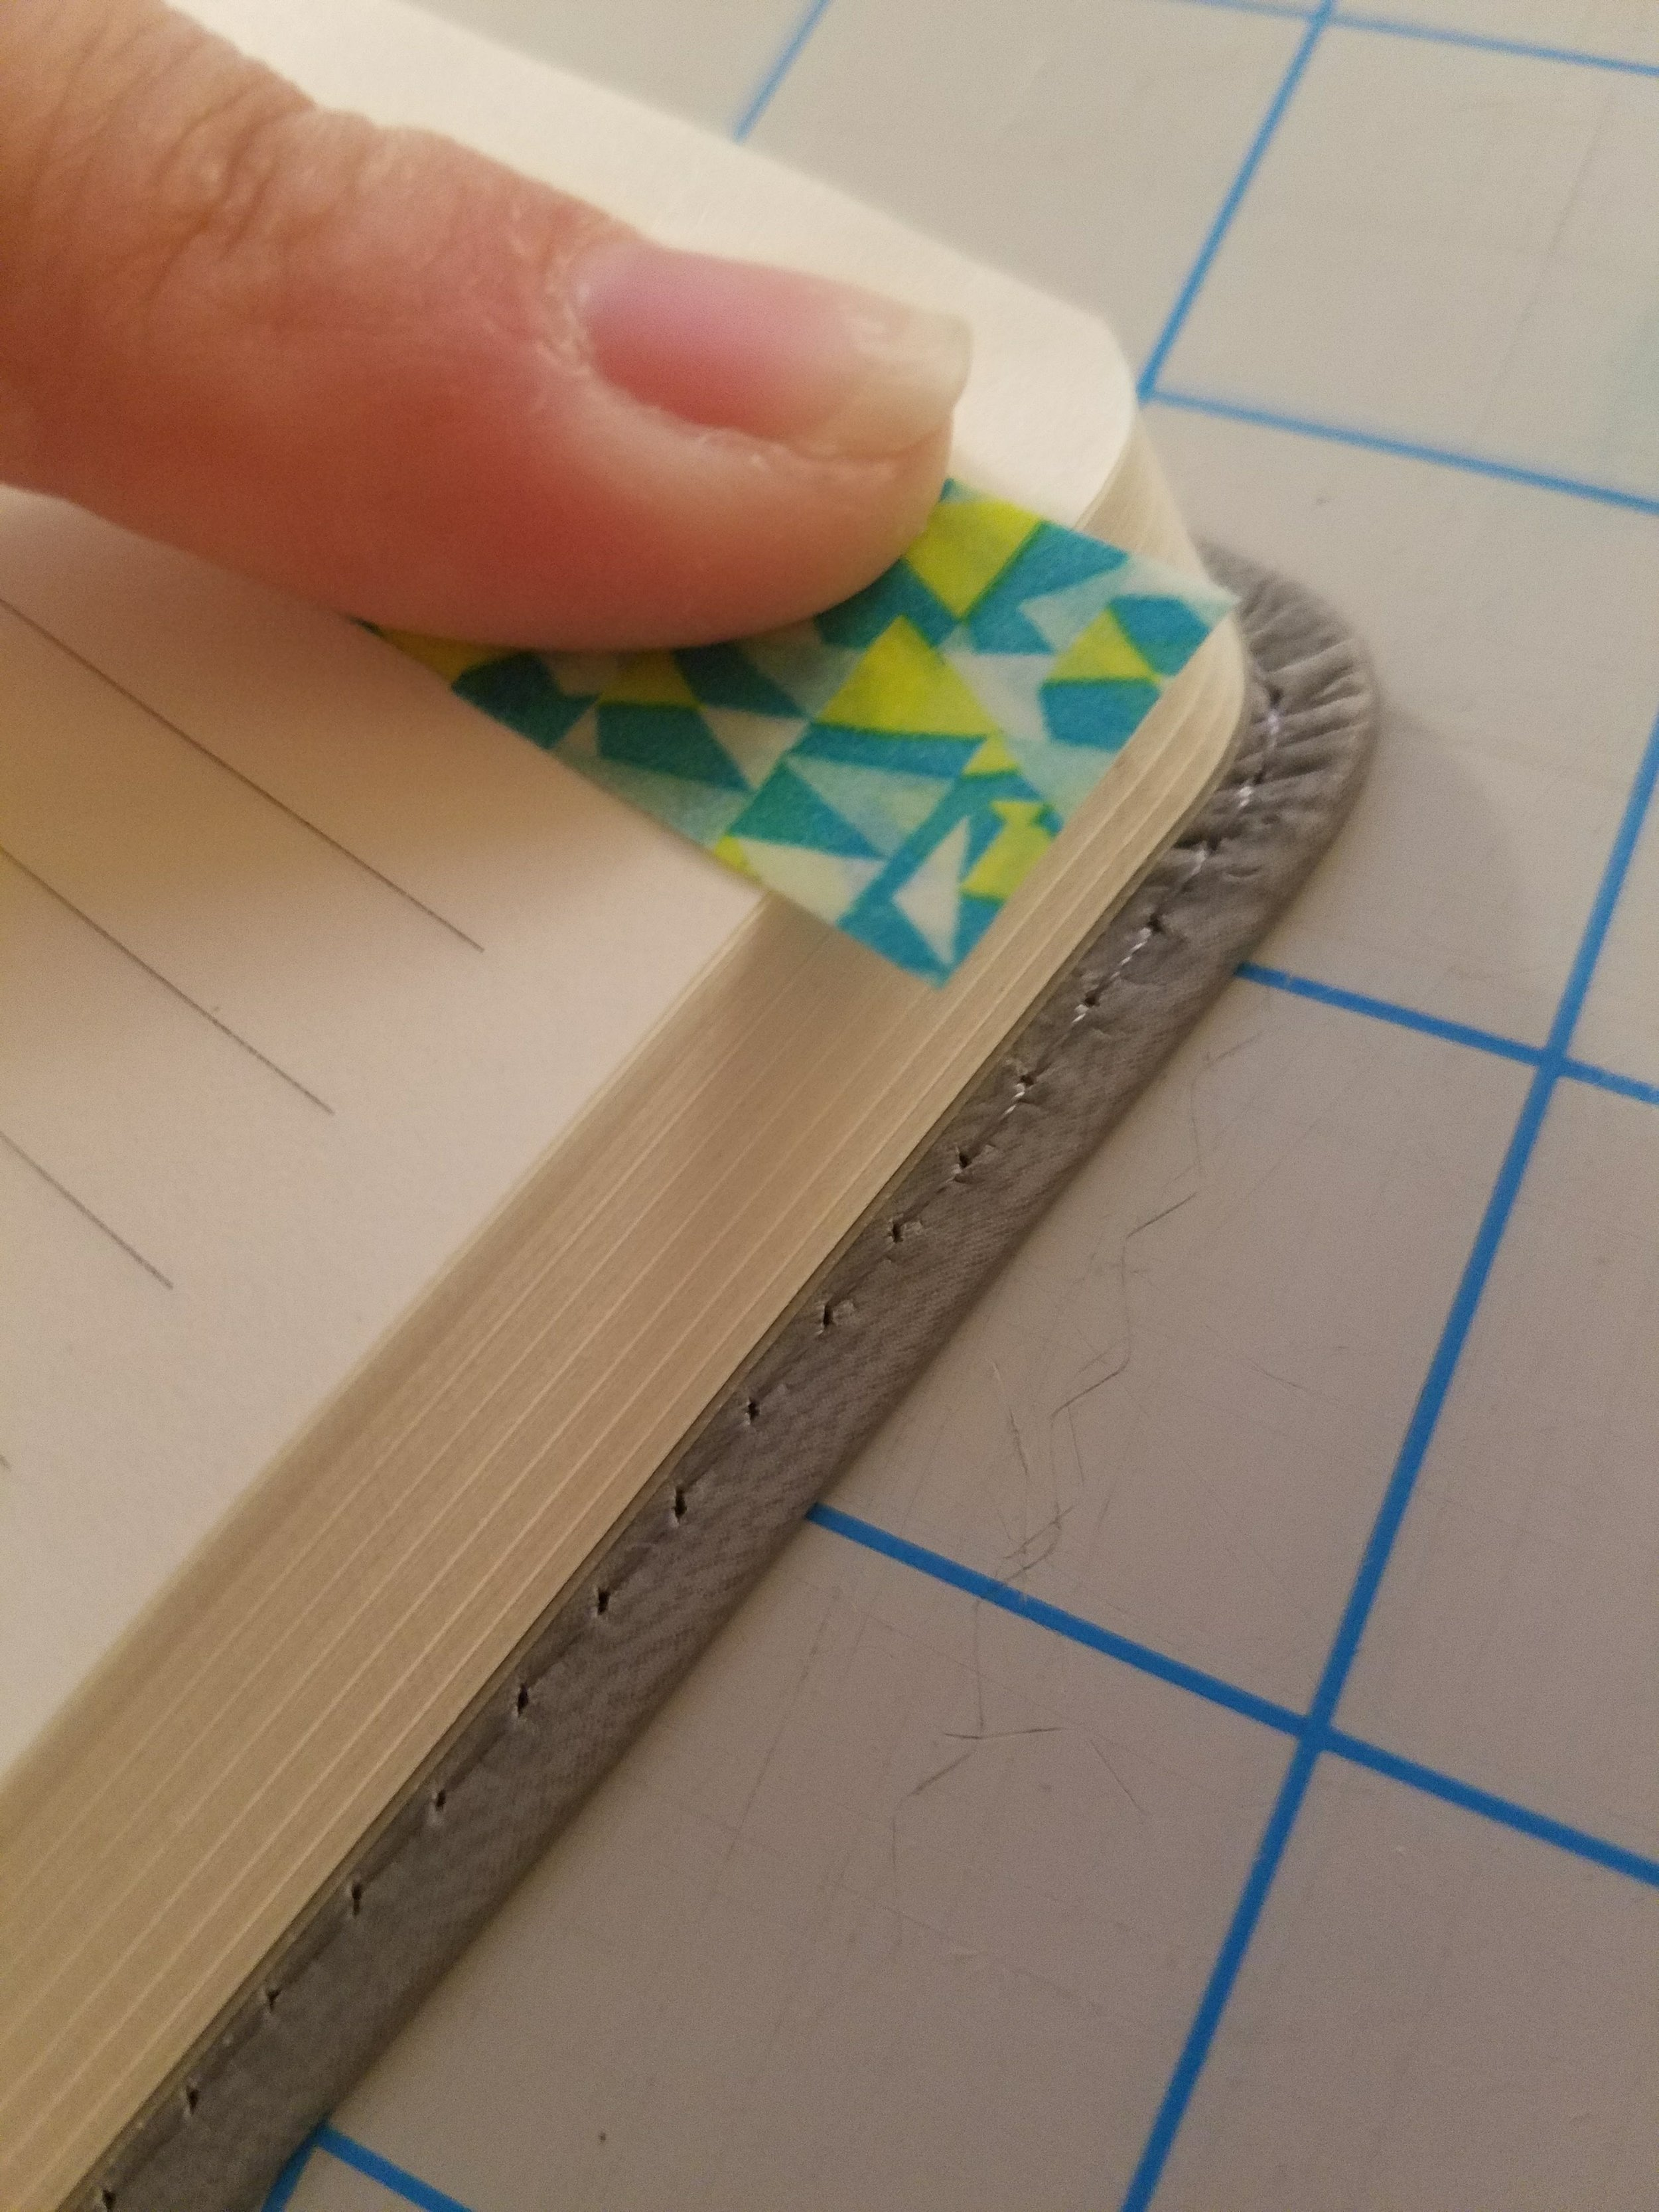 """Take a piece of Washi tape approximately 1.5"""" long and fold about a 1/3 of it in half so that it sticks to itself. Then take the remaining sticky part and attach to the page."""